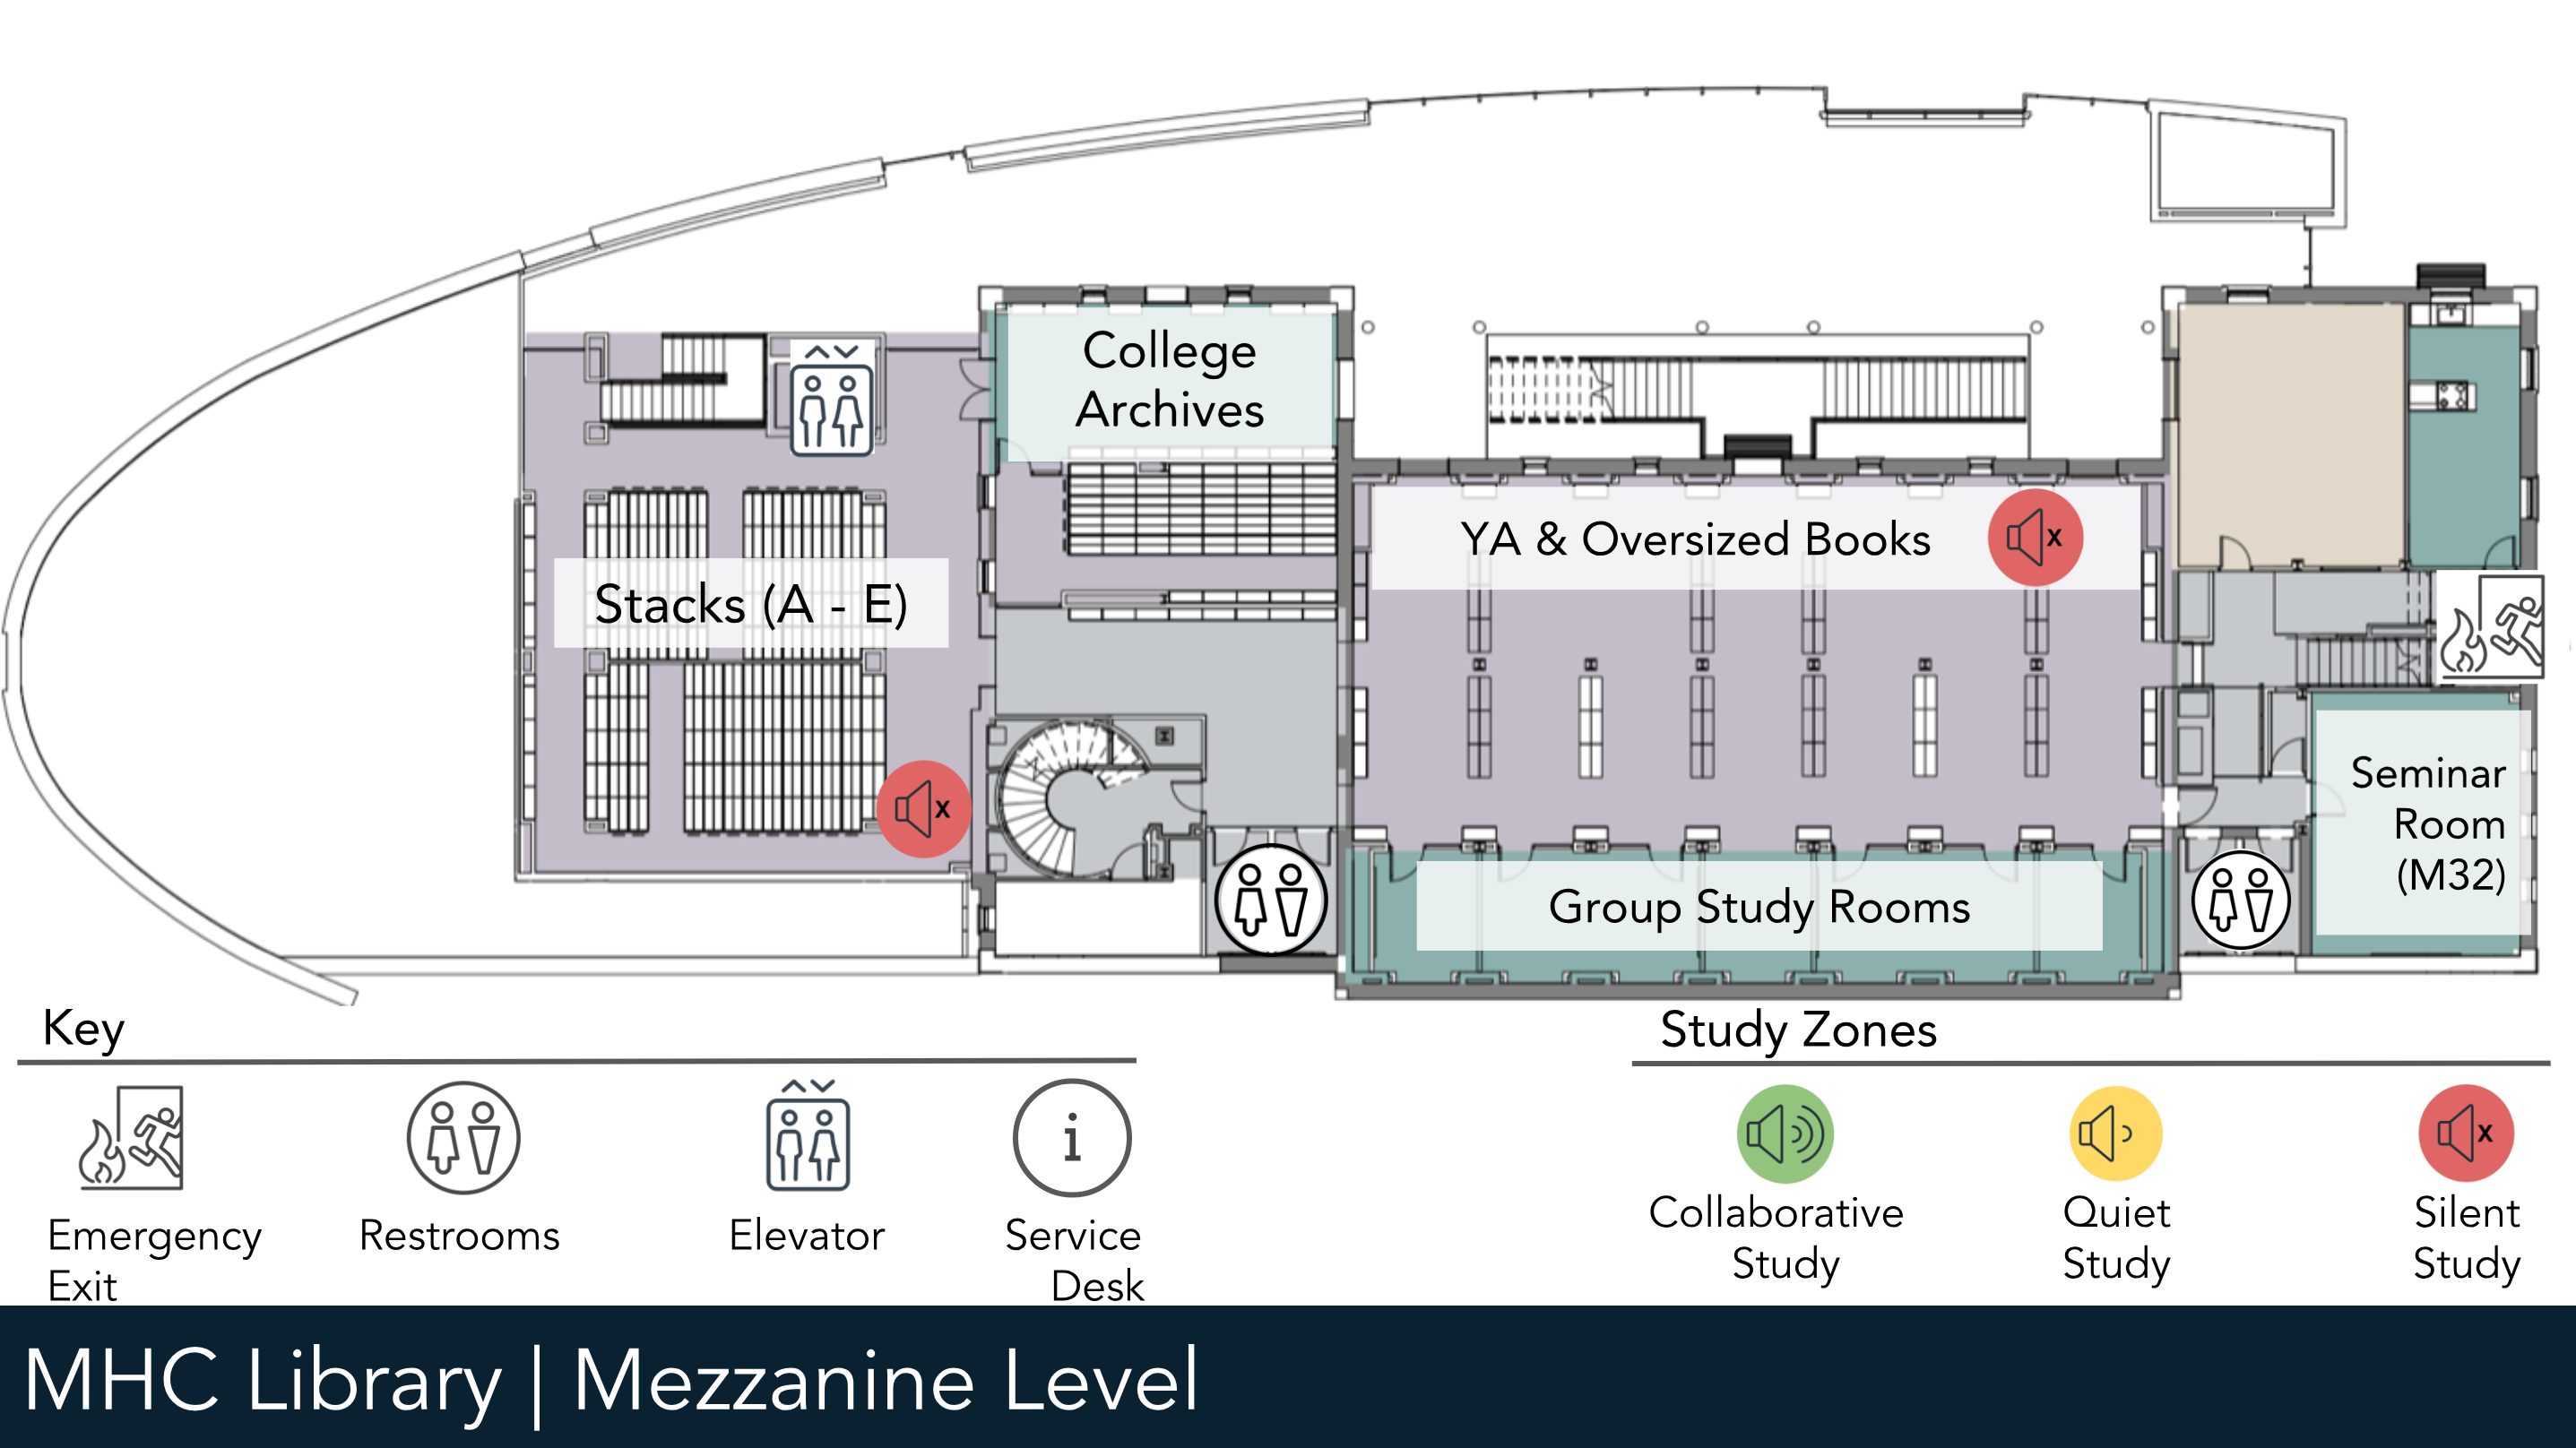 Mezzanine Level